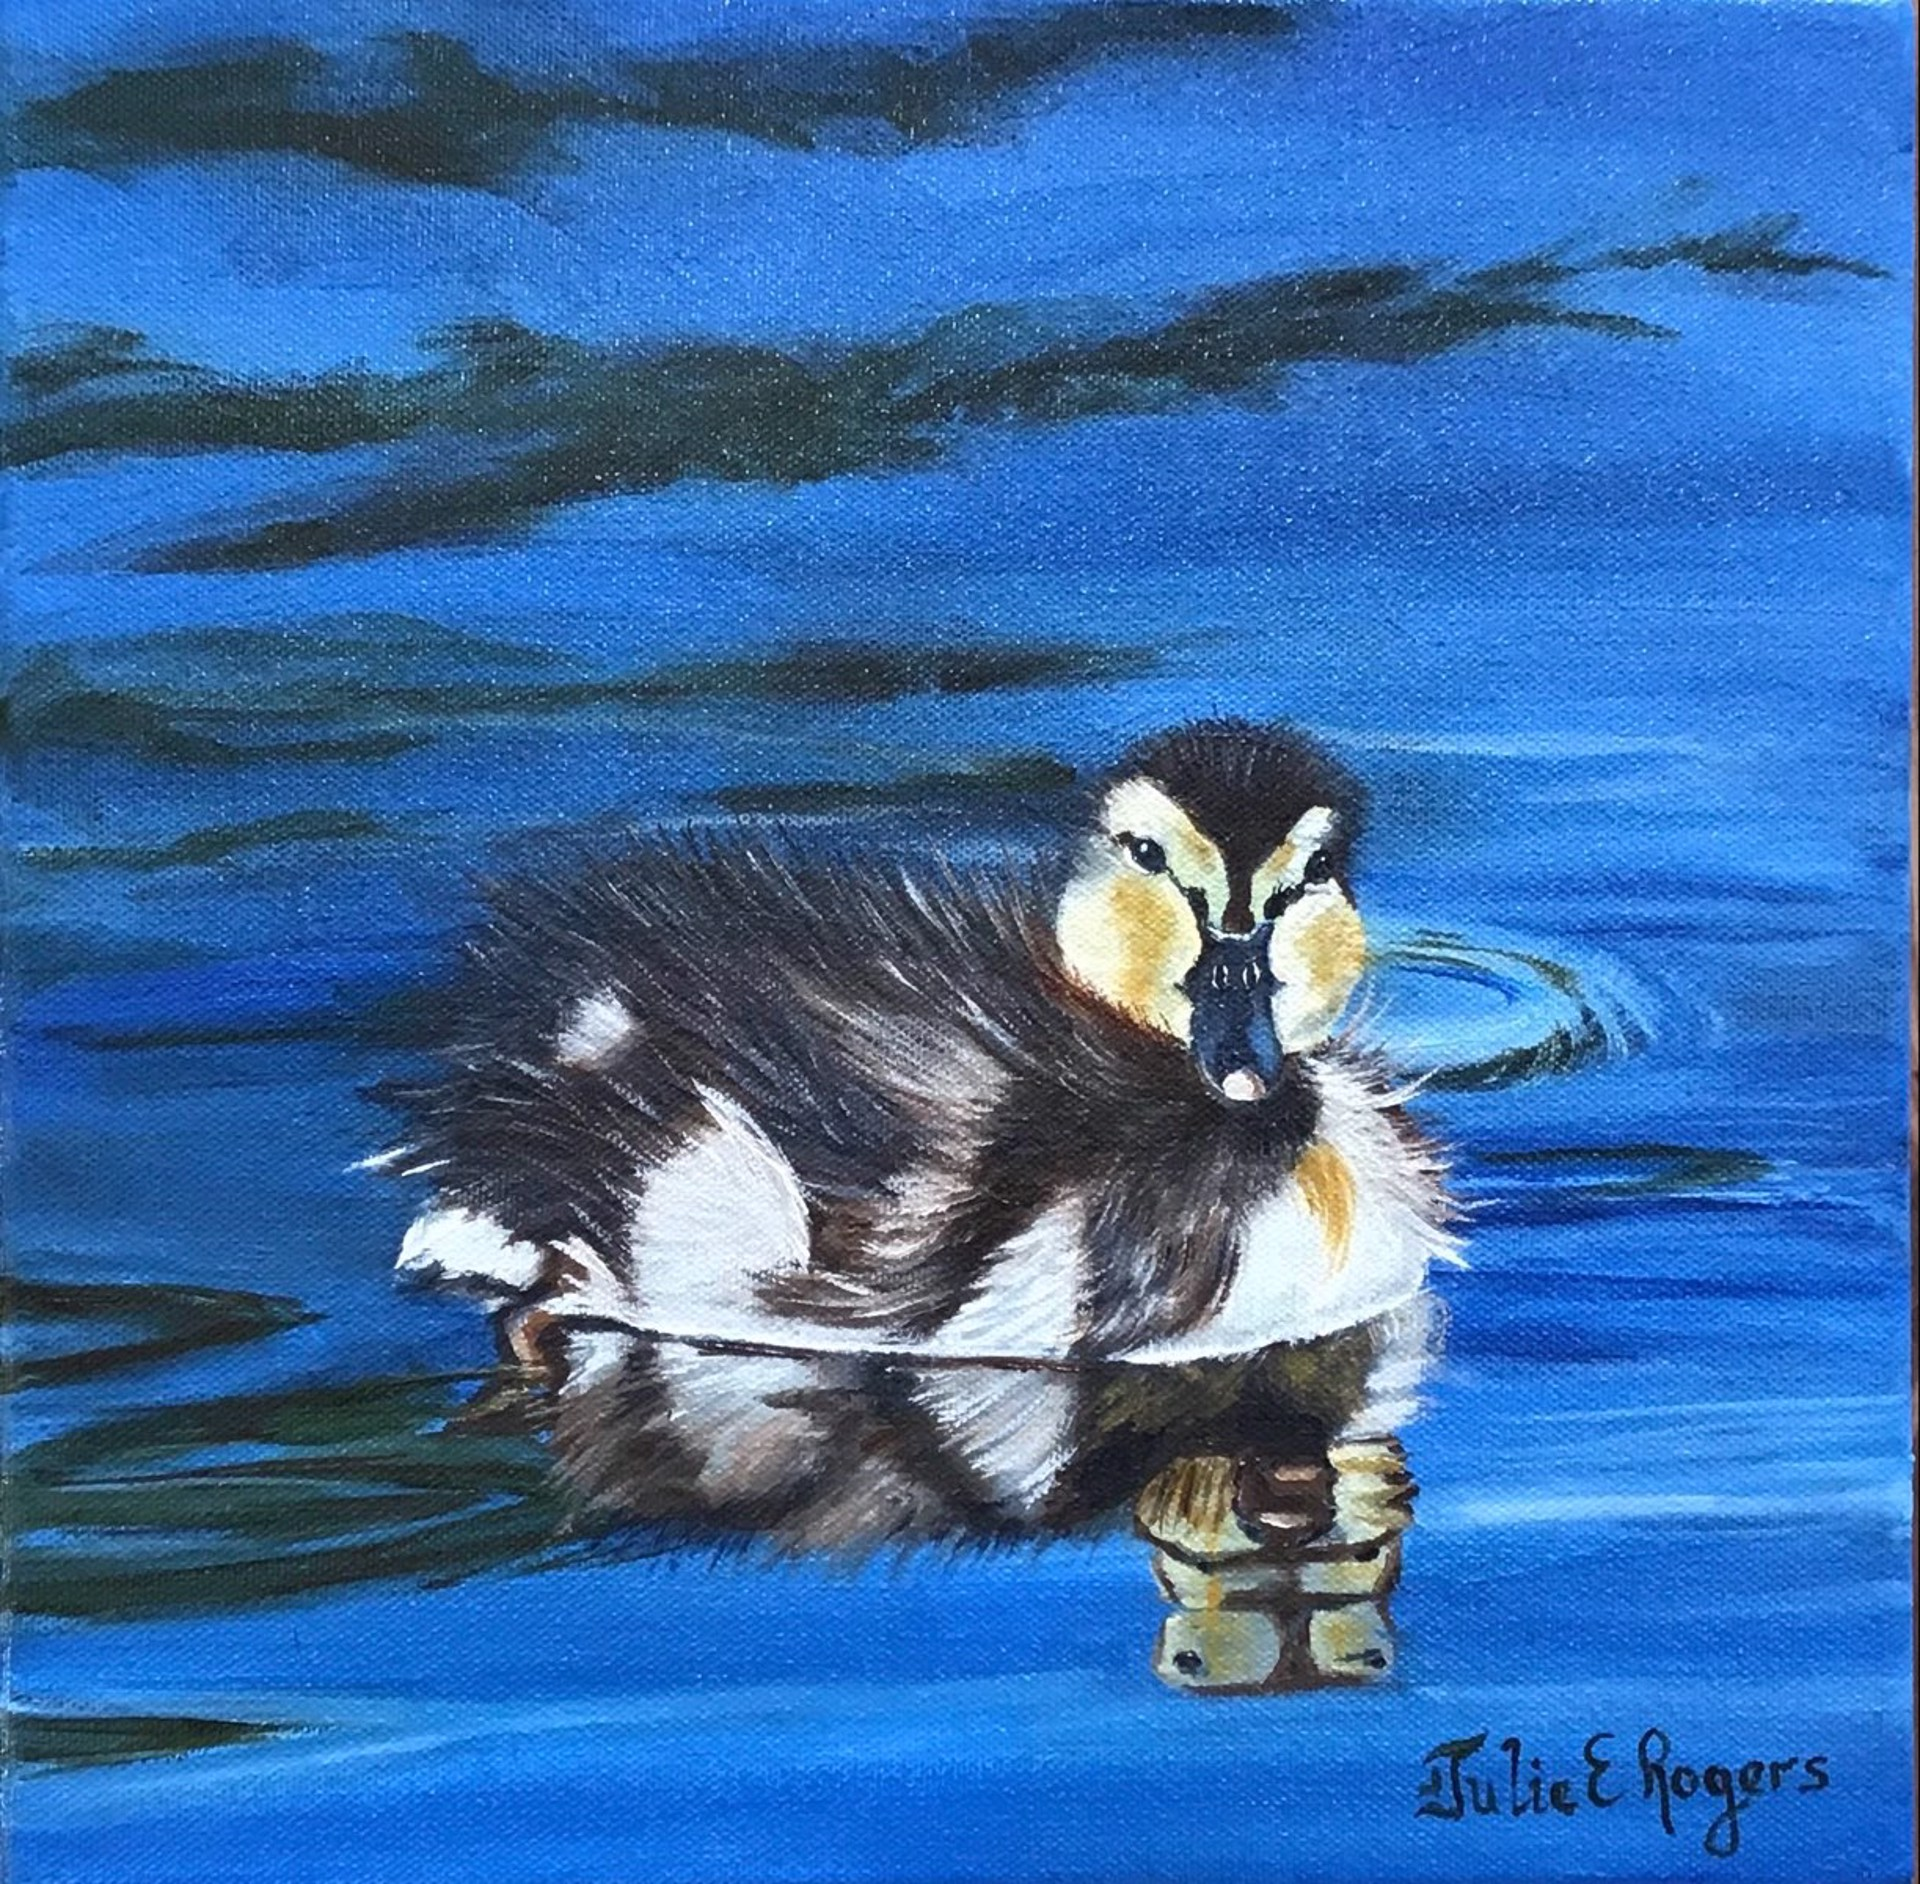 Fluffy by Julie Rogers